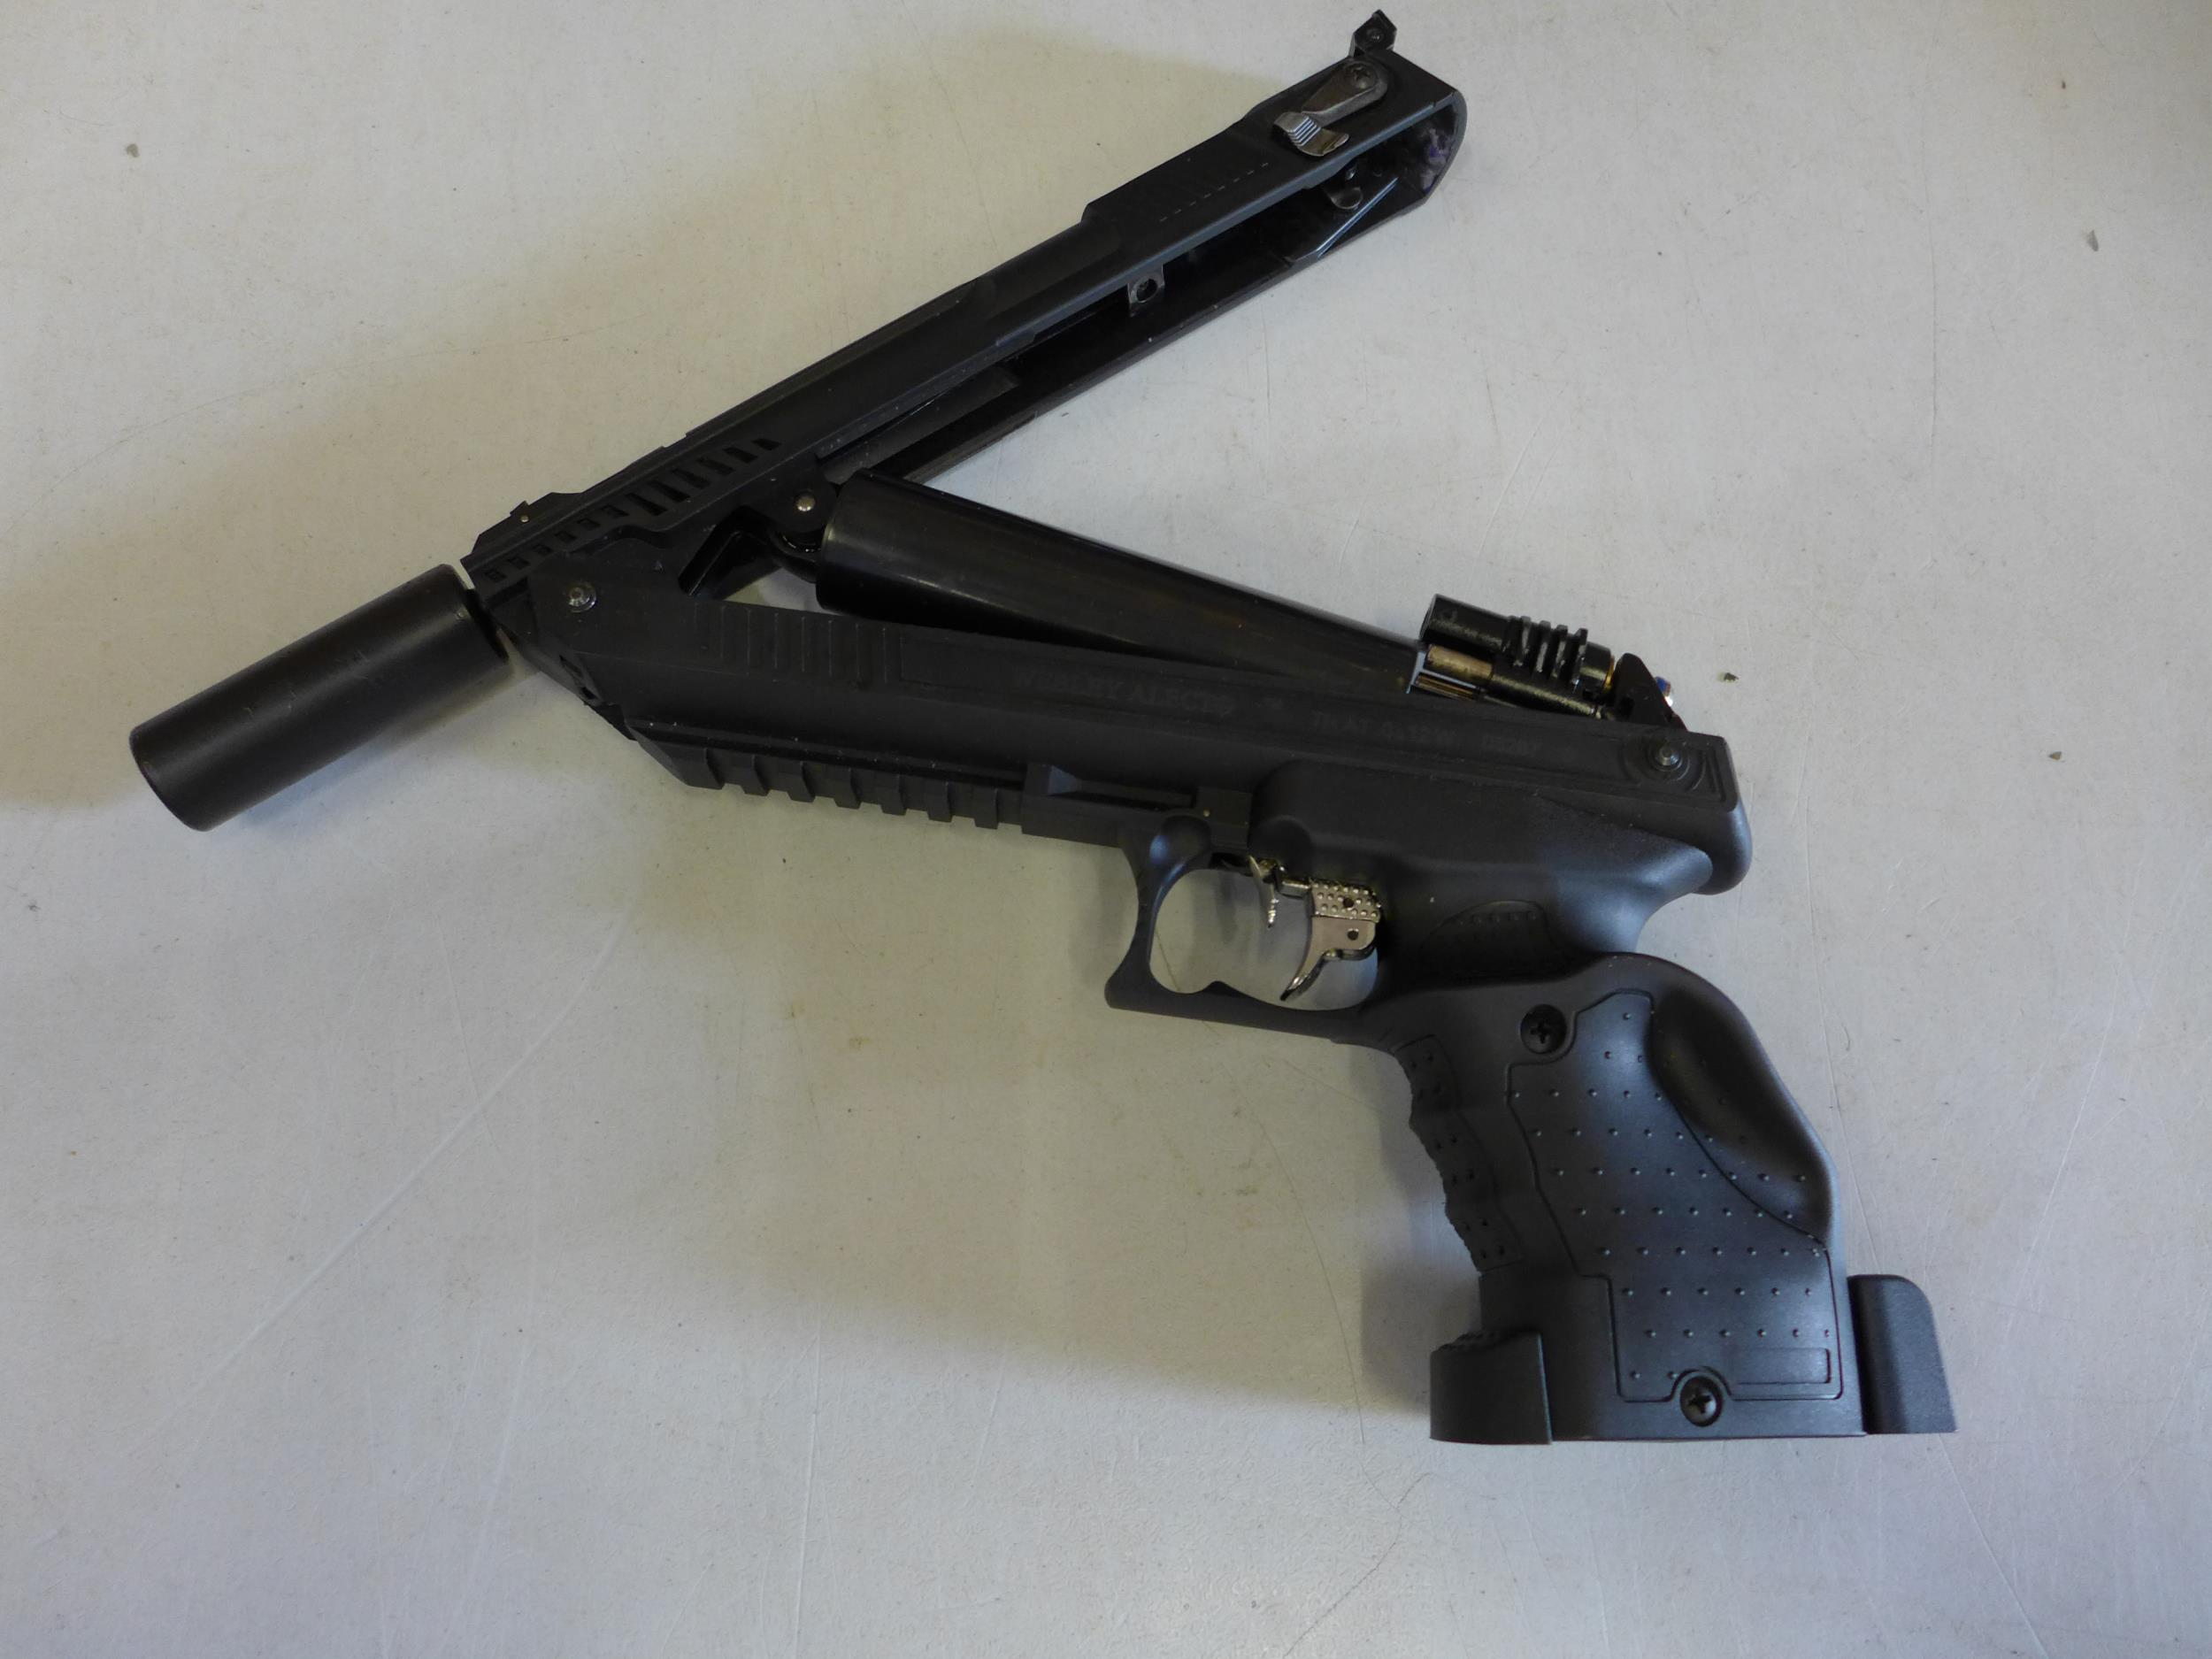 A CASED WEBLEY ALECT .177 CALIBRE AIR PISTOL, WITH SCREW ON SILENCER AND A TIN OF PELLETS - Image 4 of 4